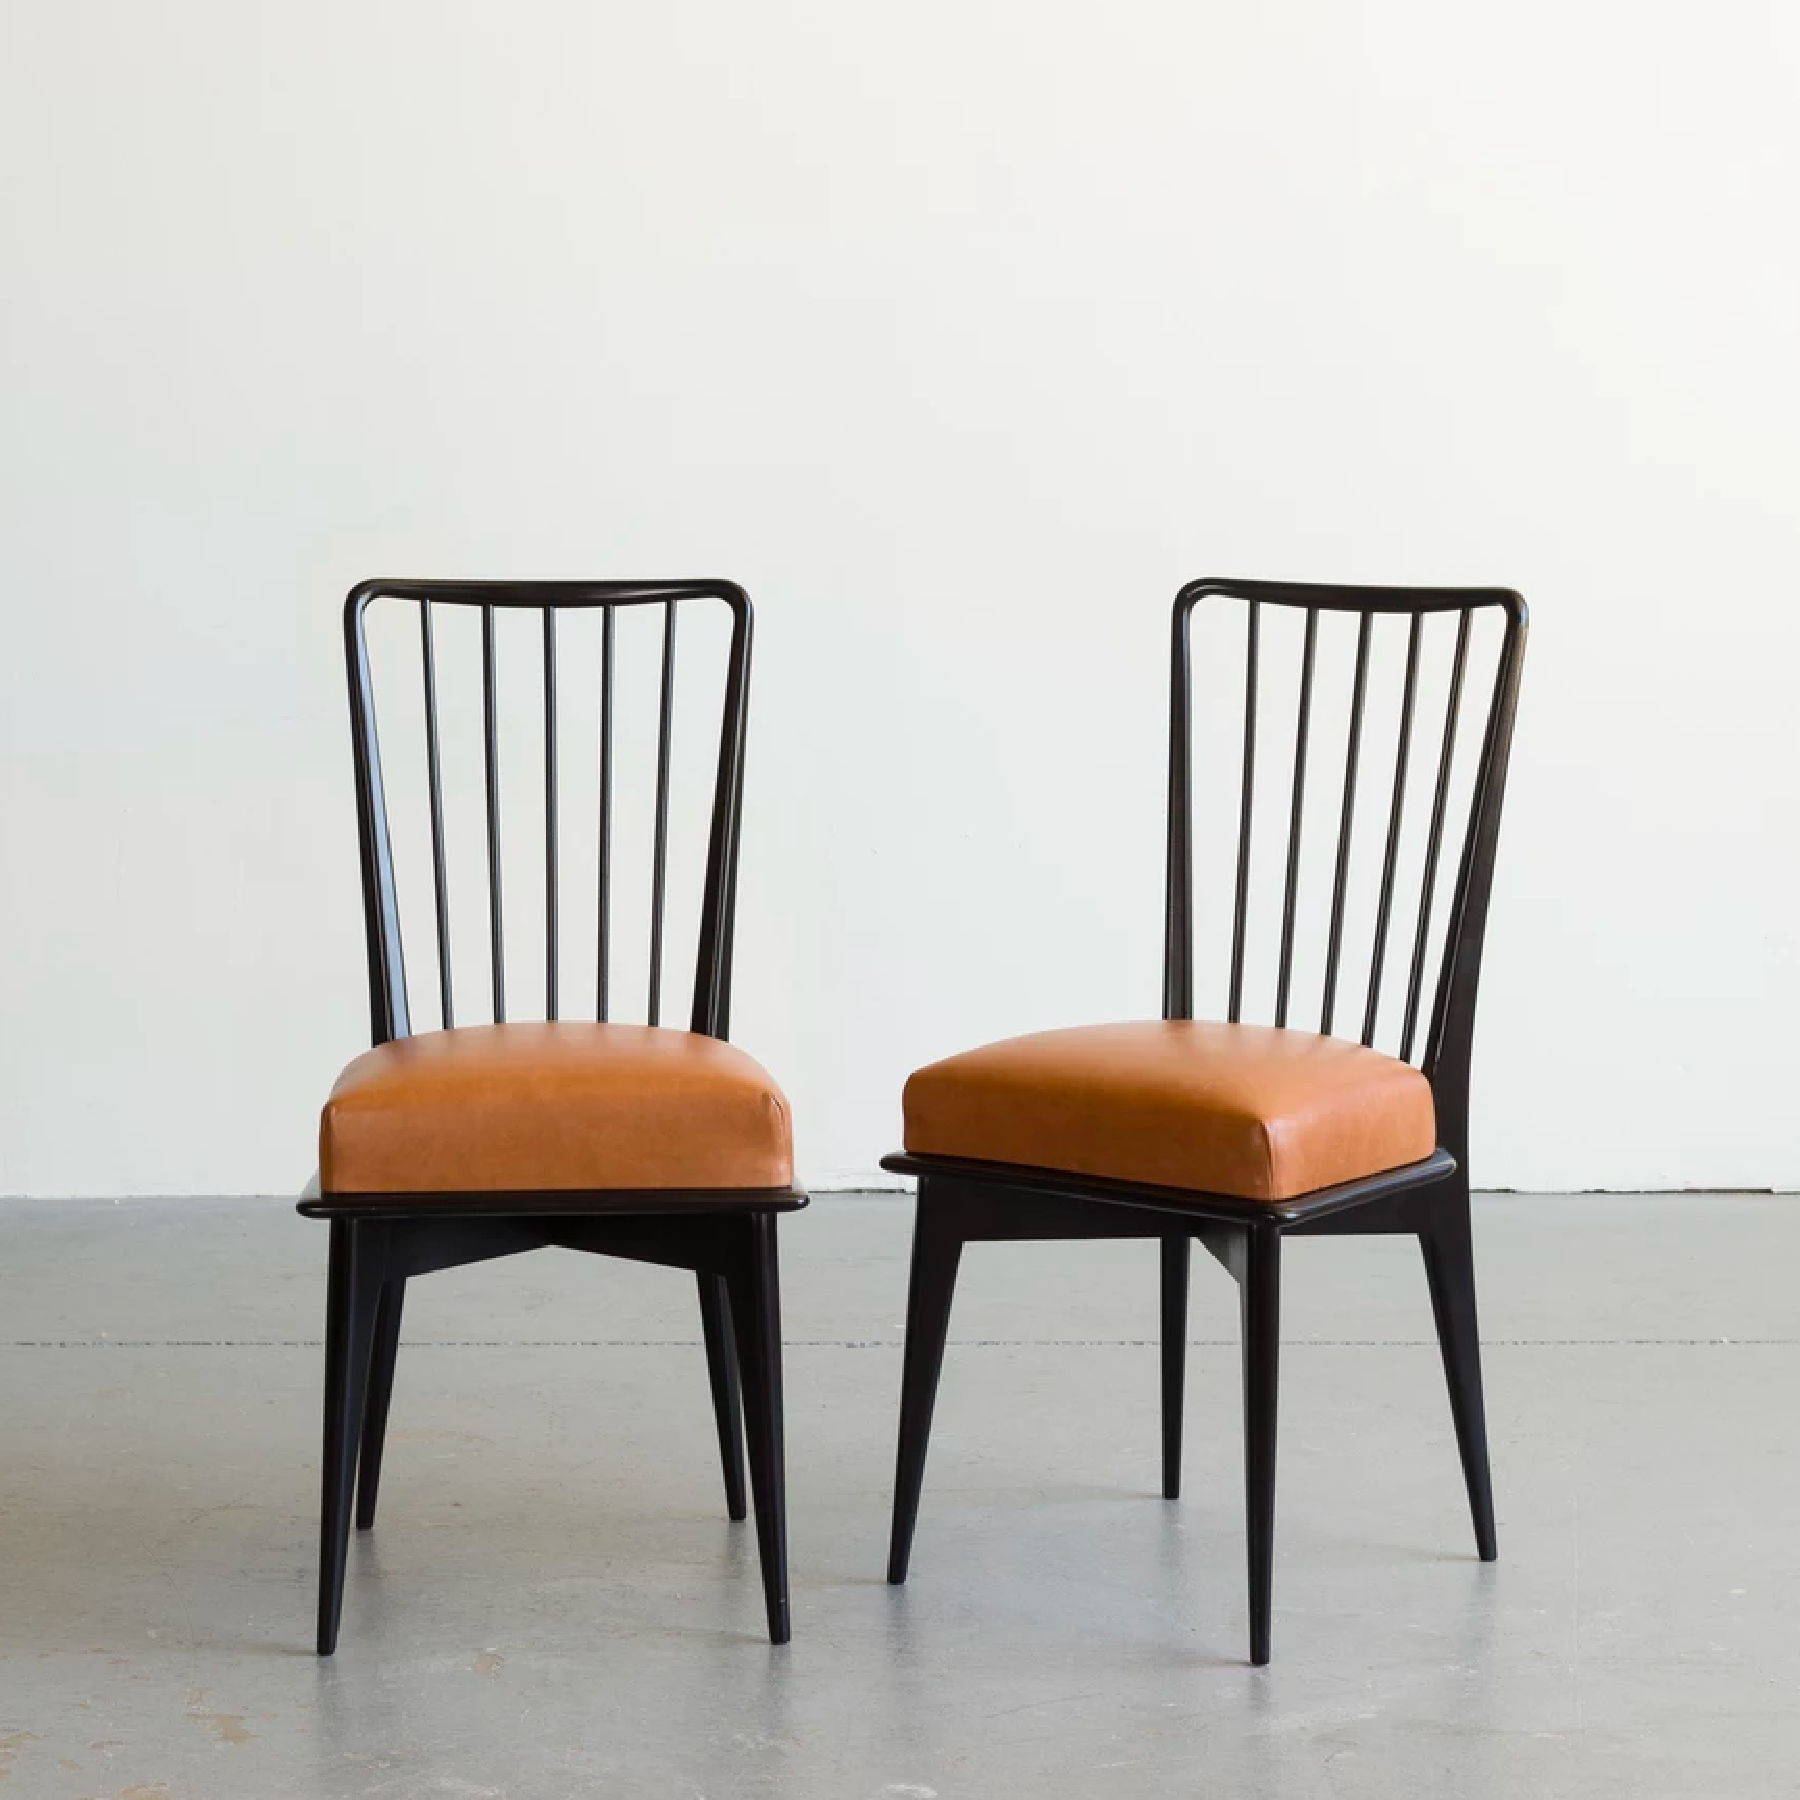 Wondrous Add To Cart Dining Chairs All Sorts Of Machost Co Dining Chair Design Ideas Machostcouk